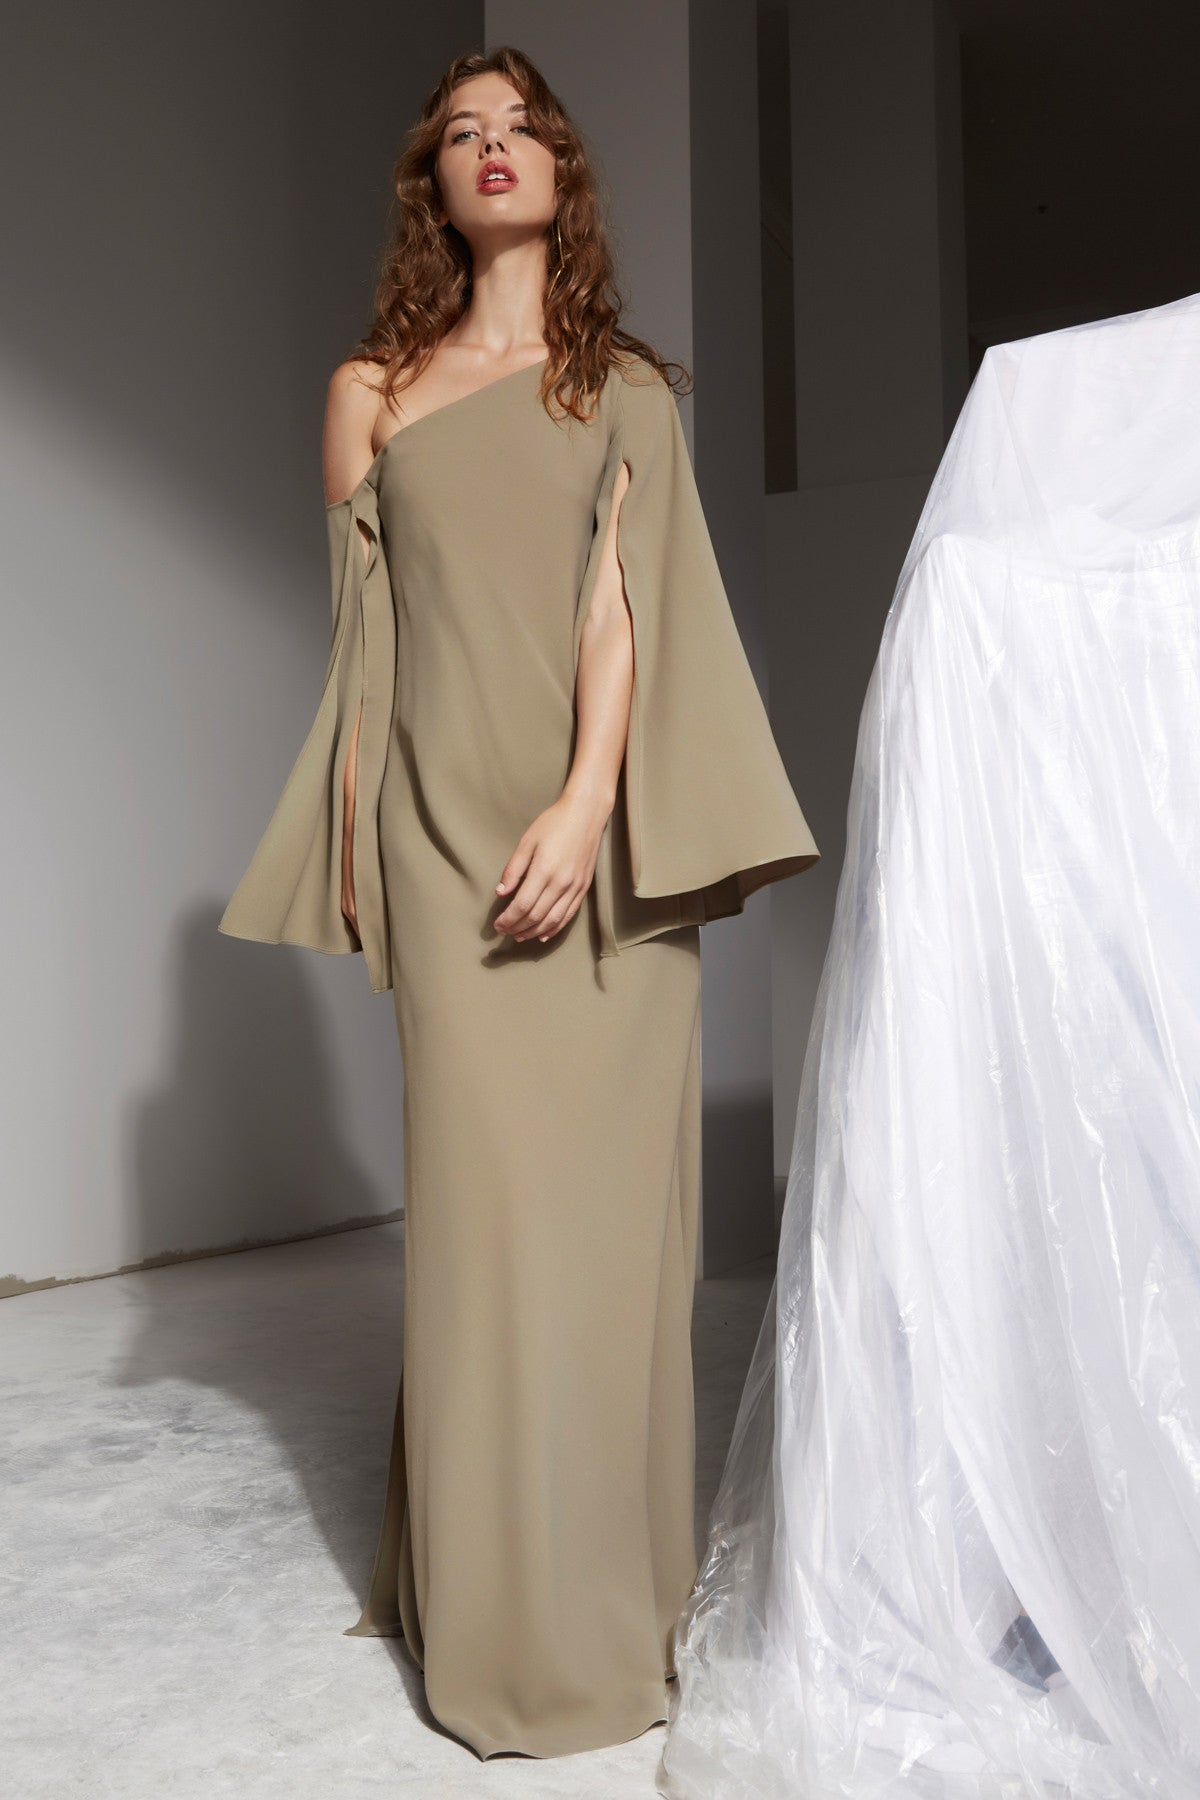 BEYOND ME FULL LENGTH DRESS khaki